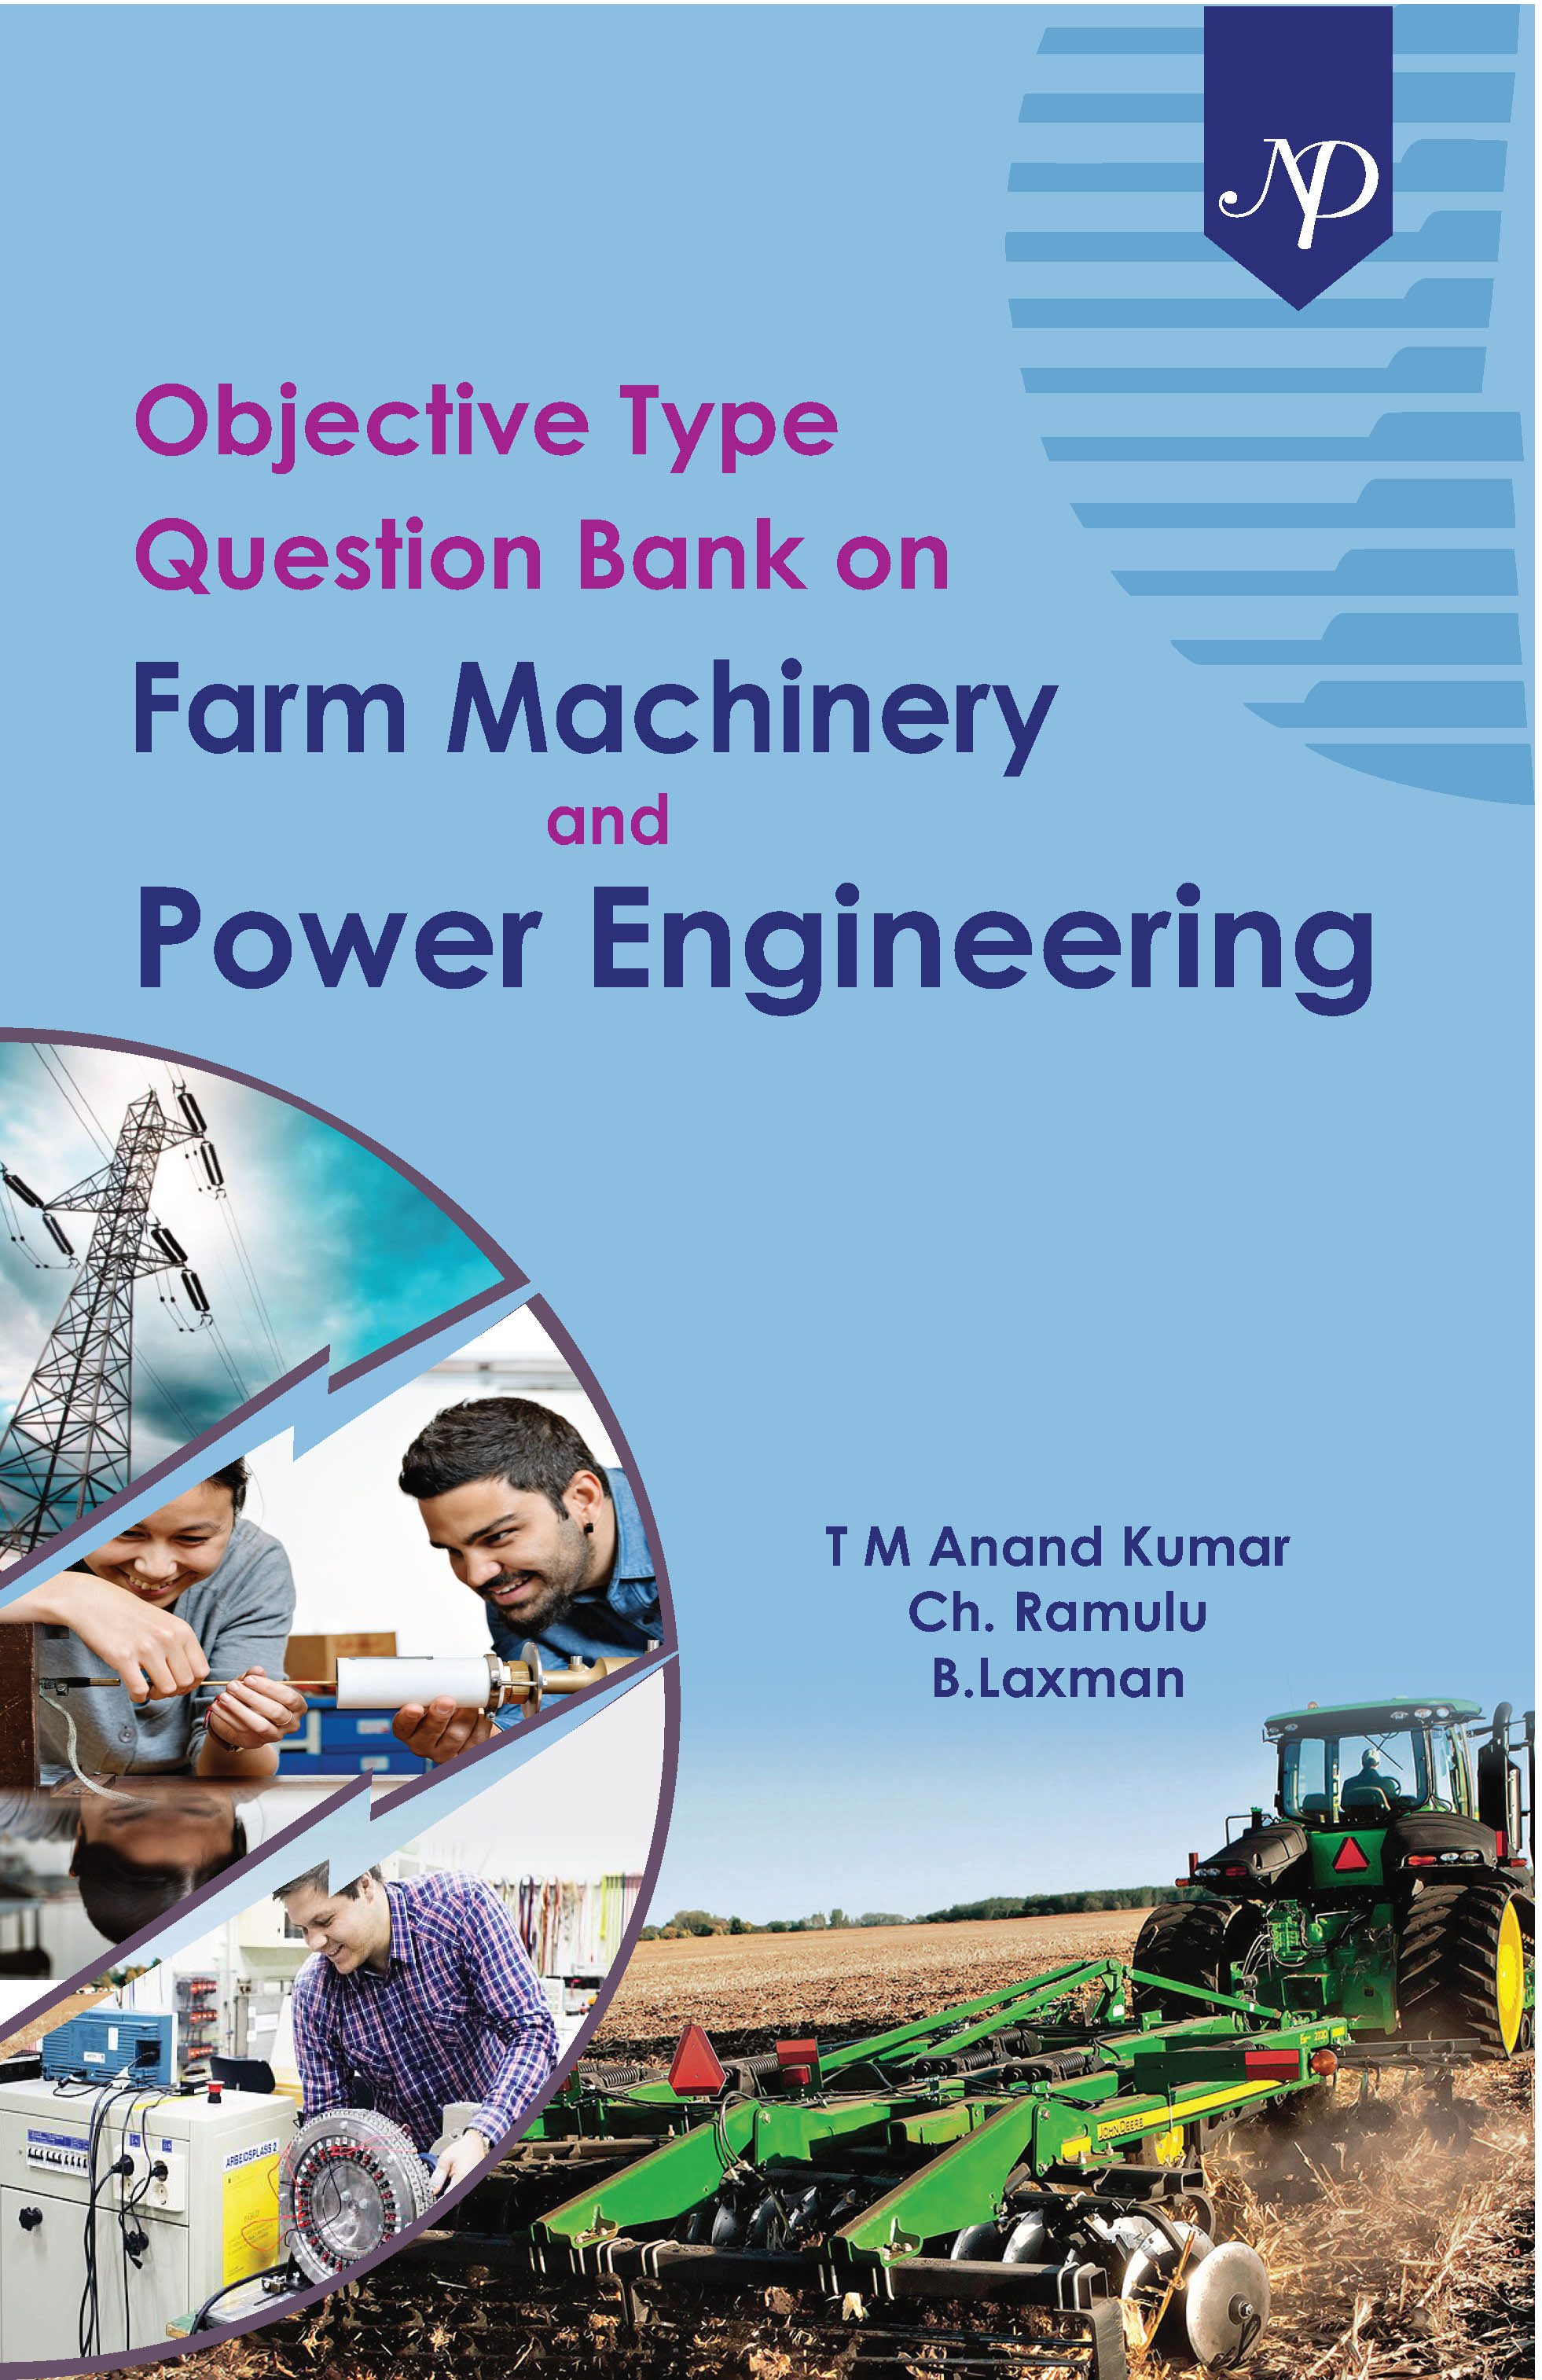 Objective Type Question Bank on Farm Machinery and Power Engineering